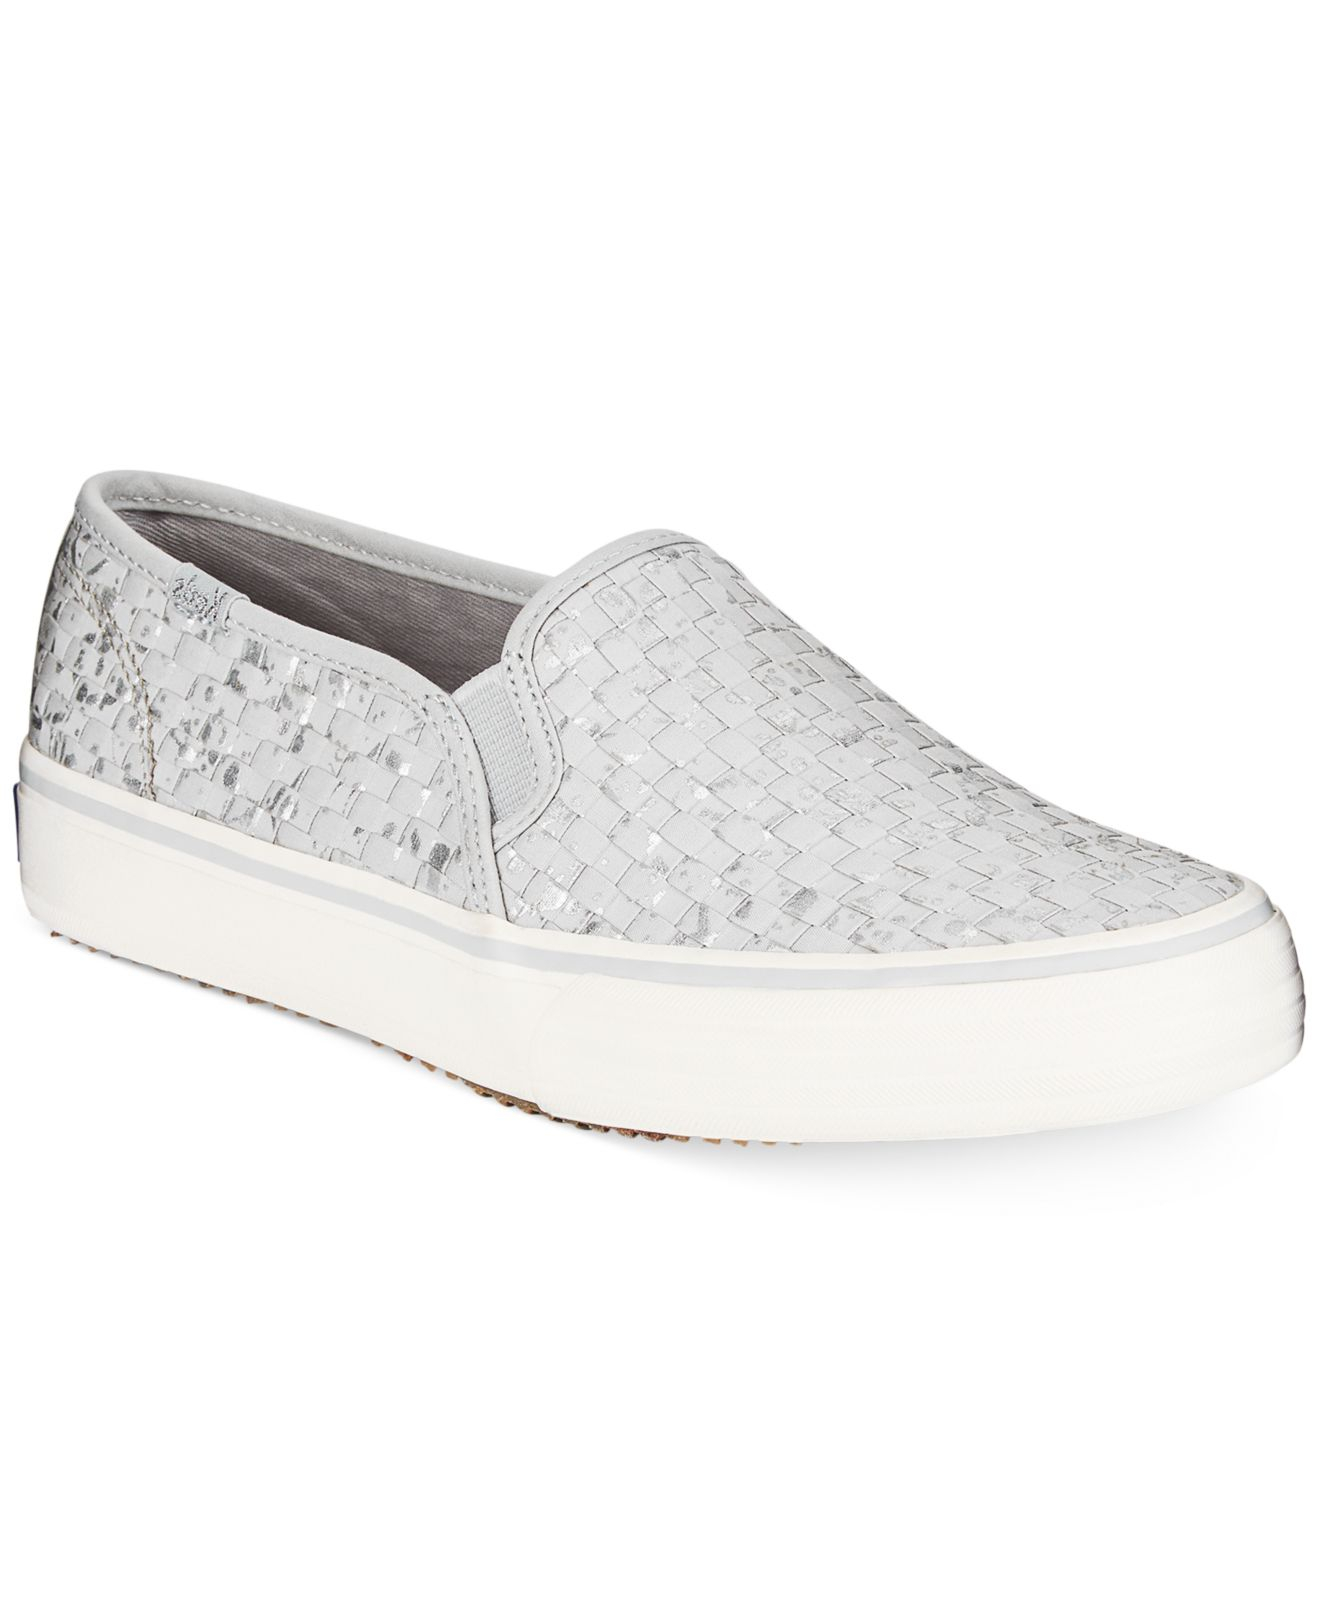 Keds Double Decker Slip On Womens Shoes